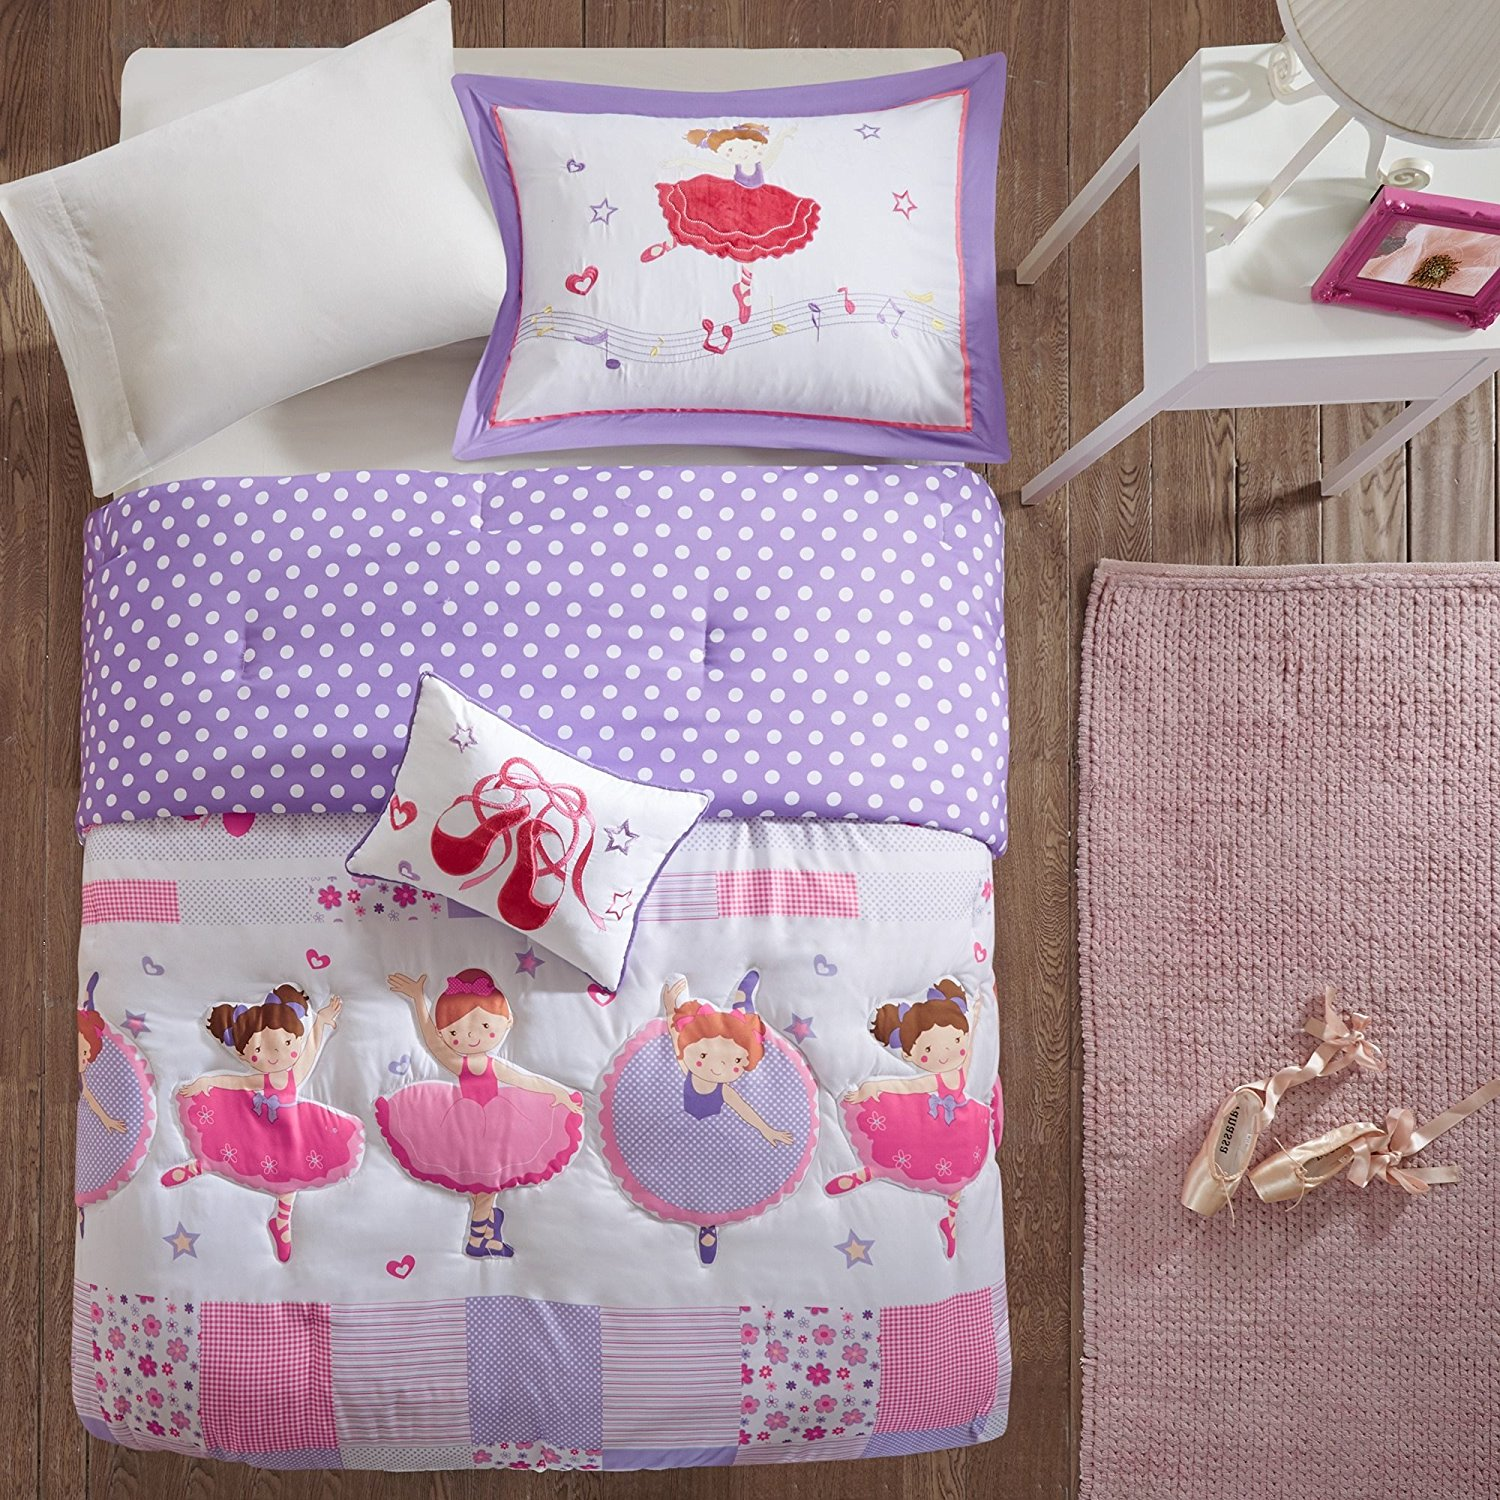 Buy 3 Piece Kids Lavender Pink White Dancers Ballet Shoes Comforter Set Twin Colorful Light Pink Purple Patchwork Stripes Floral Checkered Teen Themed Kids Bedding Reversible Polka Dot Polyester In Cheap Price